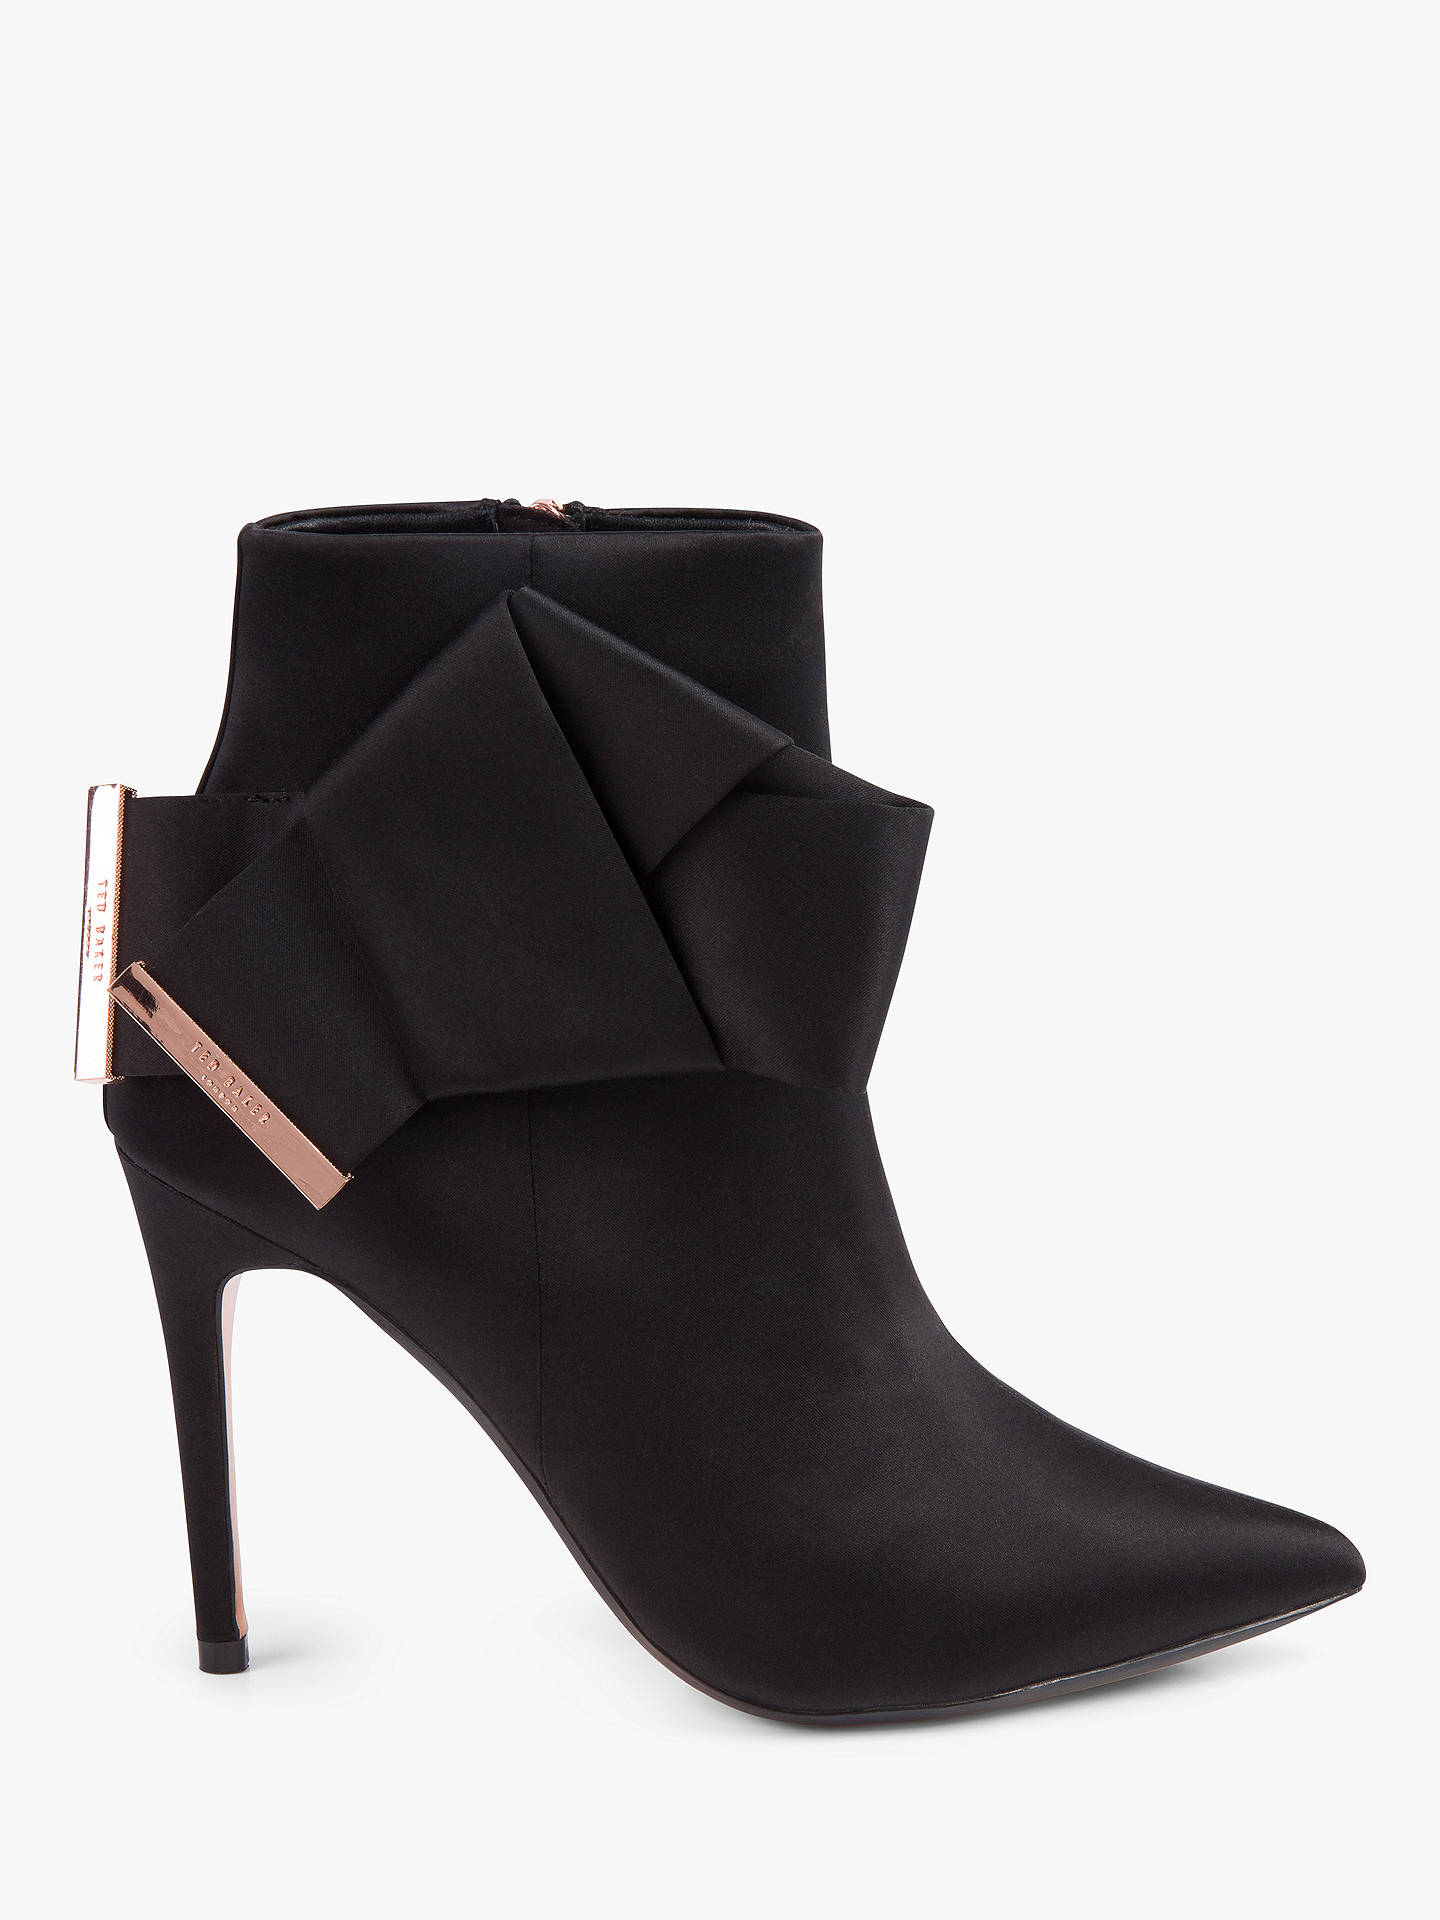 60adf30d8b2 Buy Ted Baker Celiah High Stiletto Heel Ankle Boots